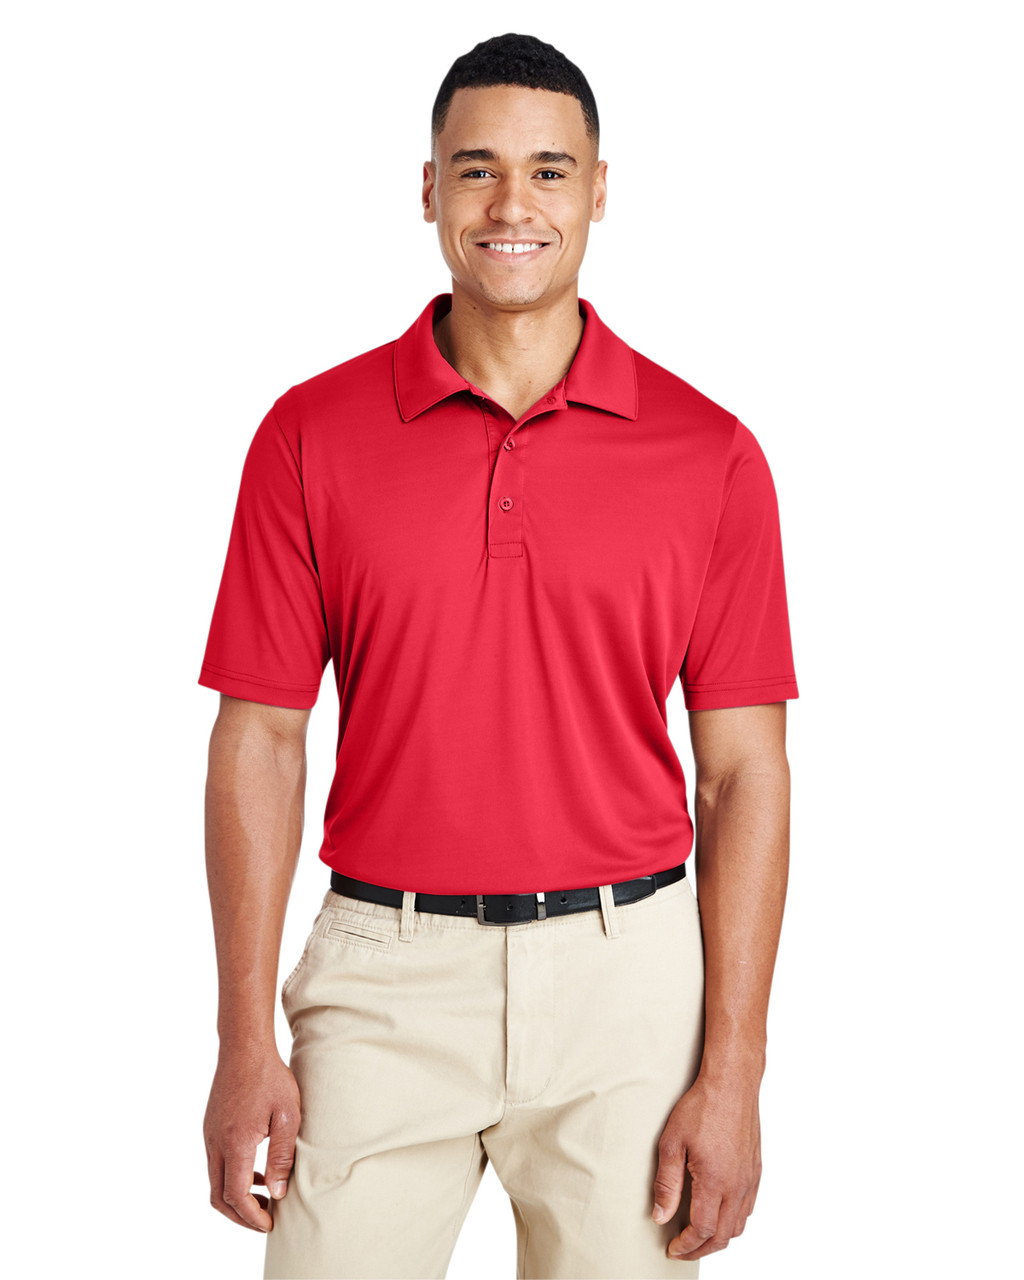 Sport Red - TT51 Team 365 Men's Zone Performance Polo